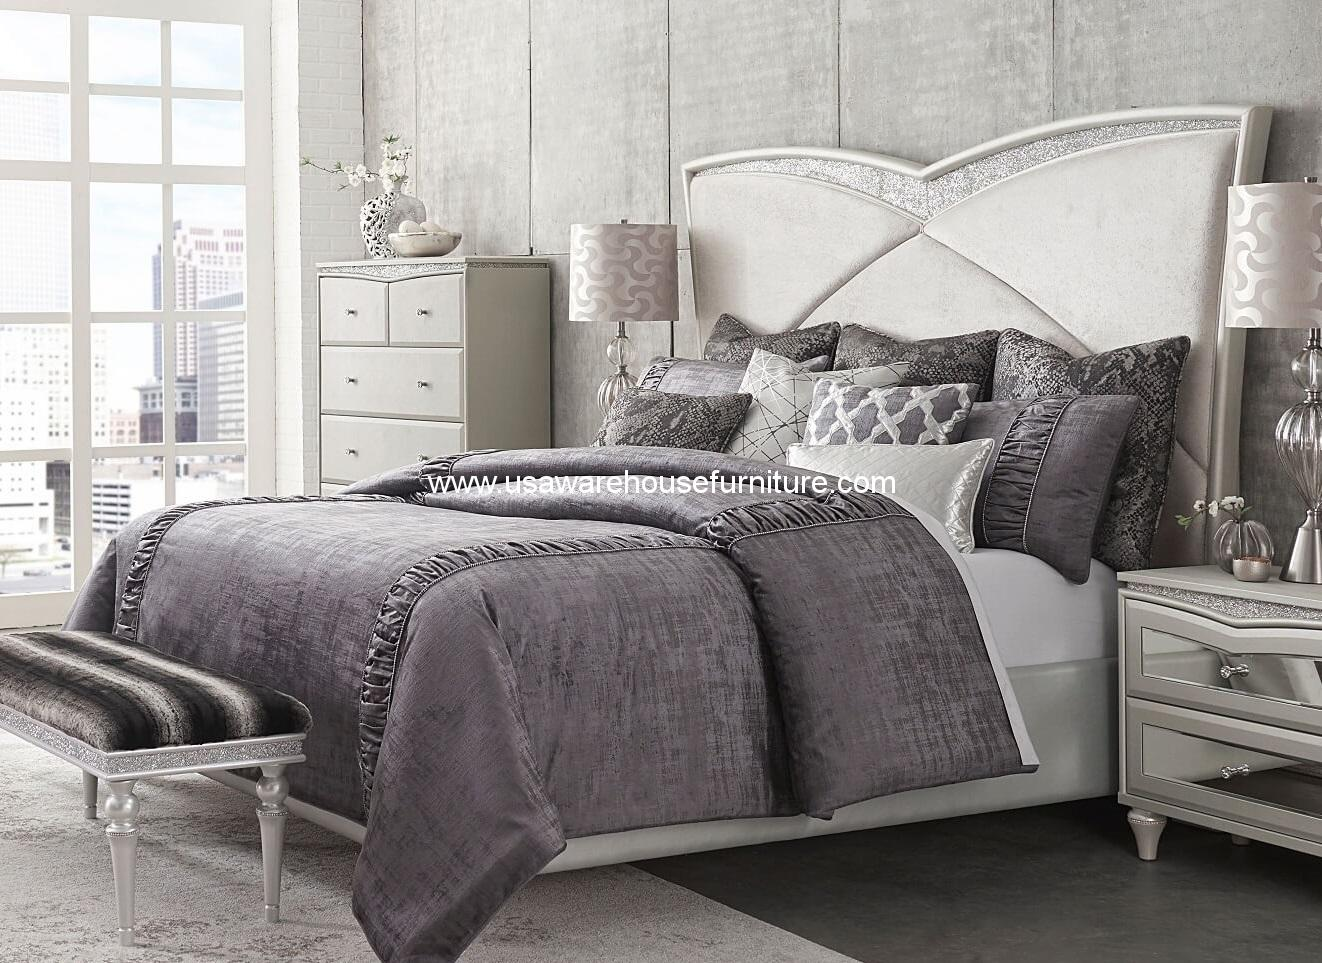 Michael amini bedding harlington luxury bedding set a for Top 10 furniture brands in usa